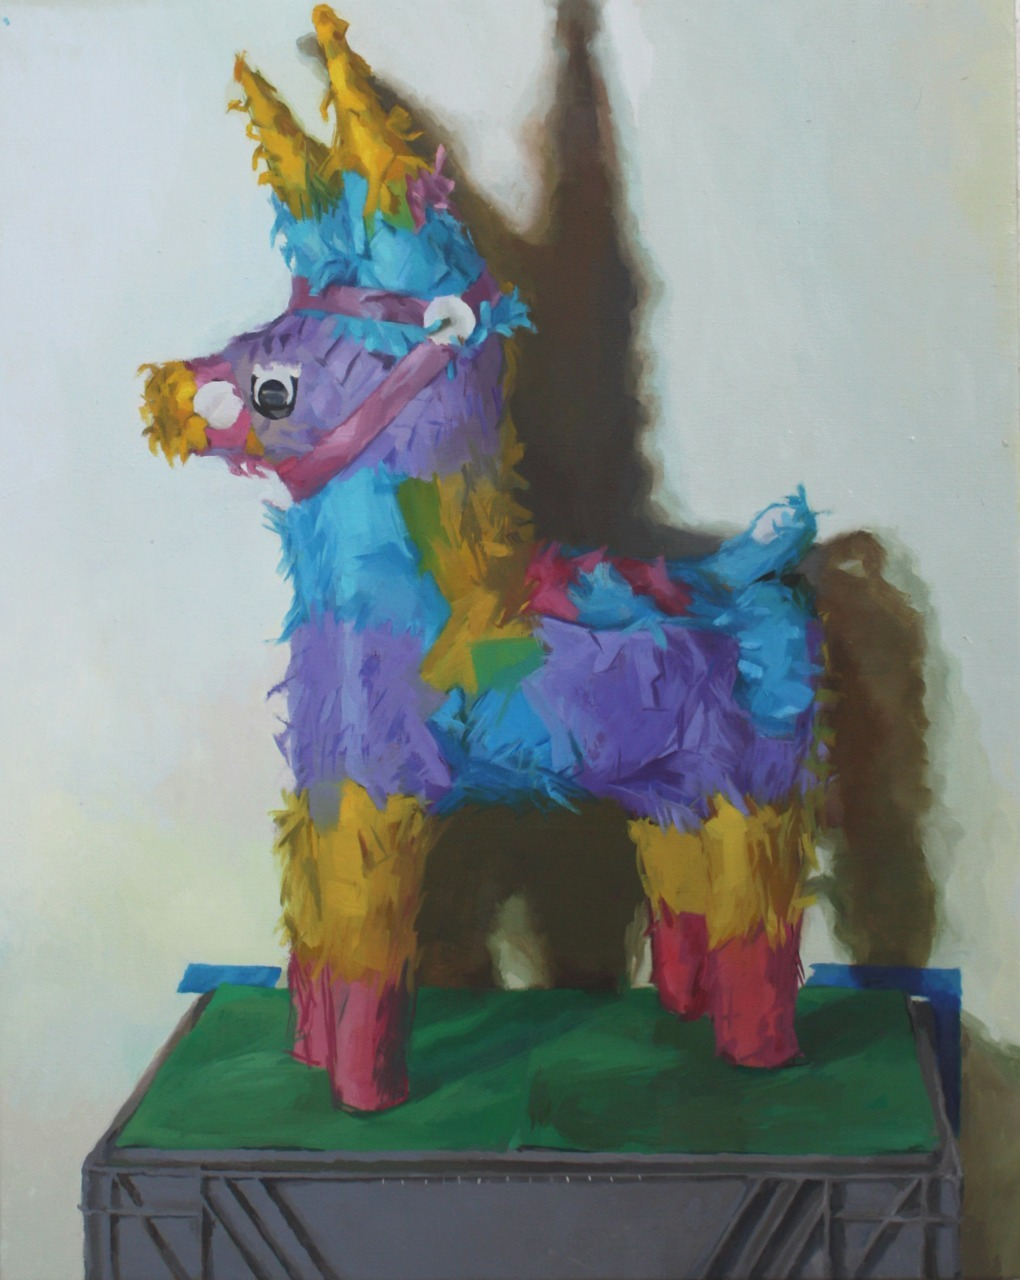 "la piñata, christian ramirez 2011 24""x30"" oil on linen  i've been working on a lot of experimentation since i graduated LCAD in '08. i've only recently started painting from direct observation again, and it's been more rewarding than ever. This is the first painting in a long time that i am very proud of.  Viewer Submission * We love the color and whimsy of this piece, not to mention that murky shadowing. *"